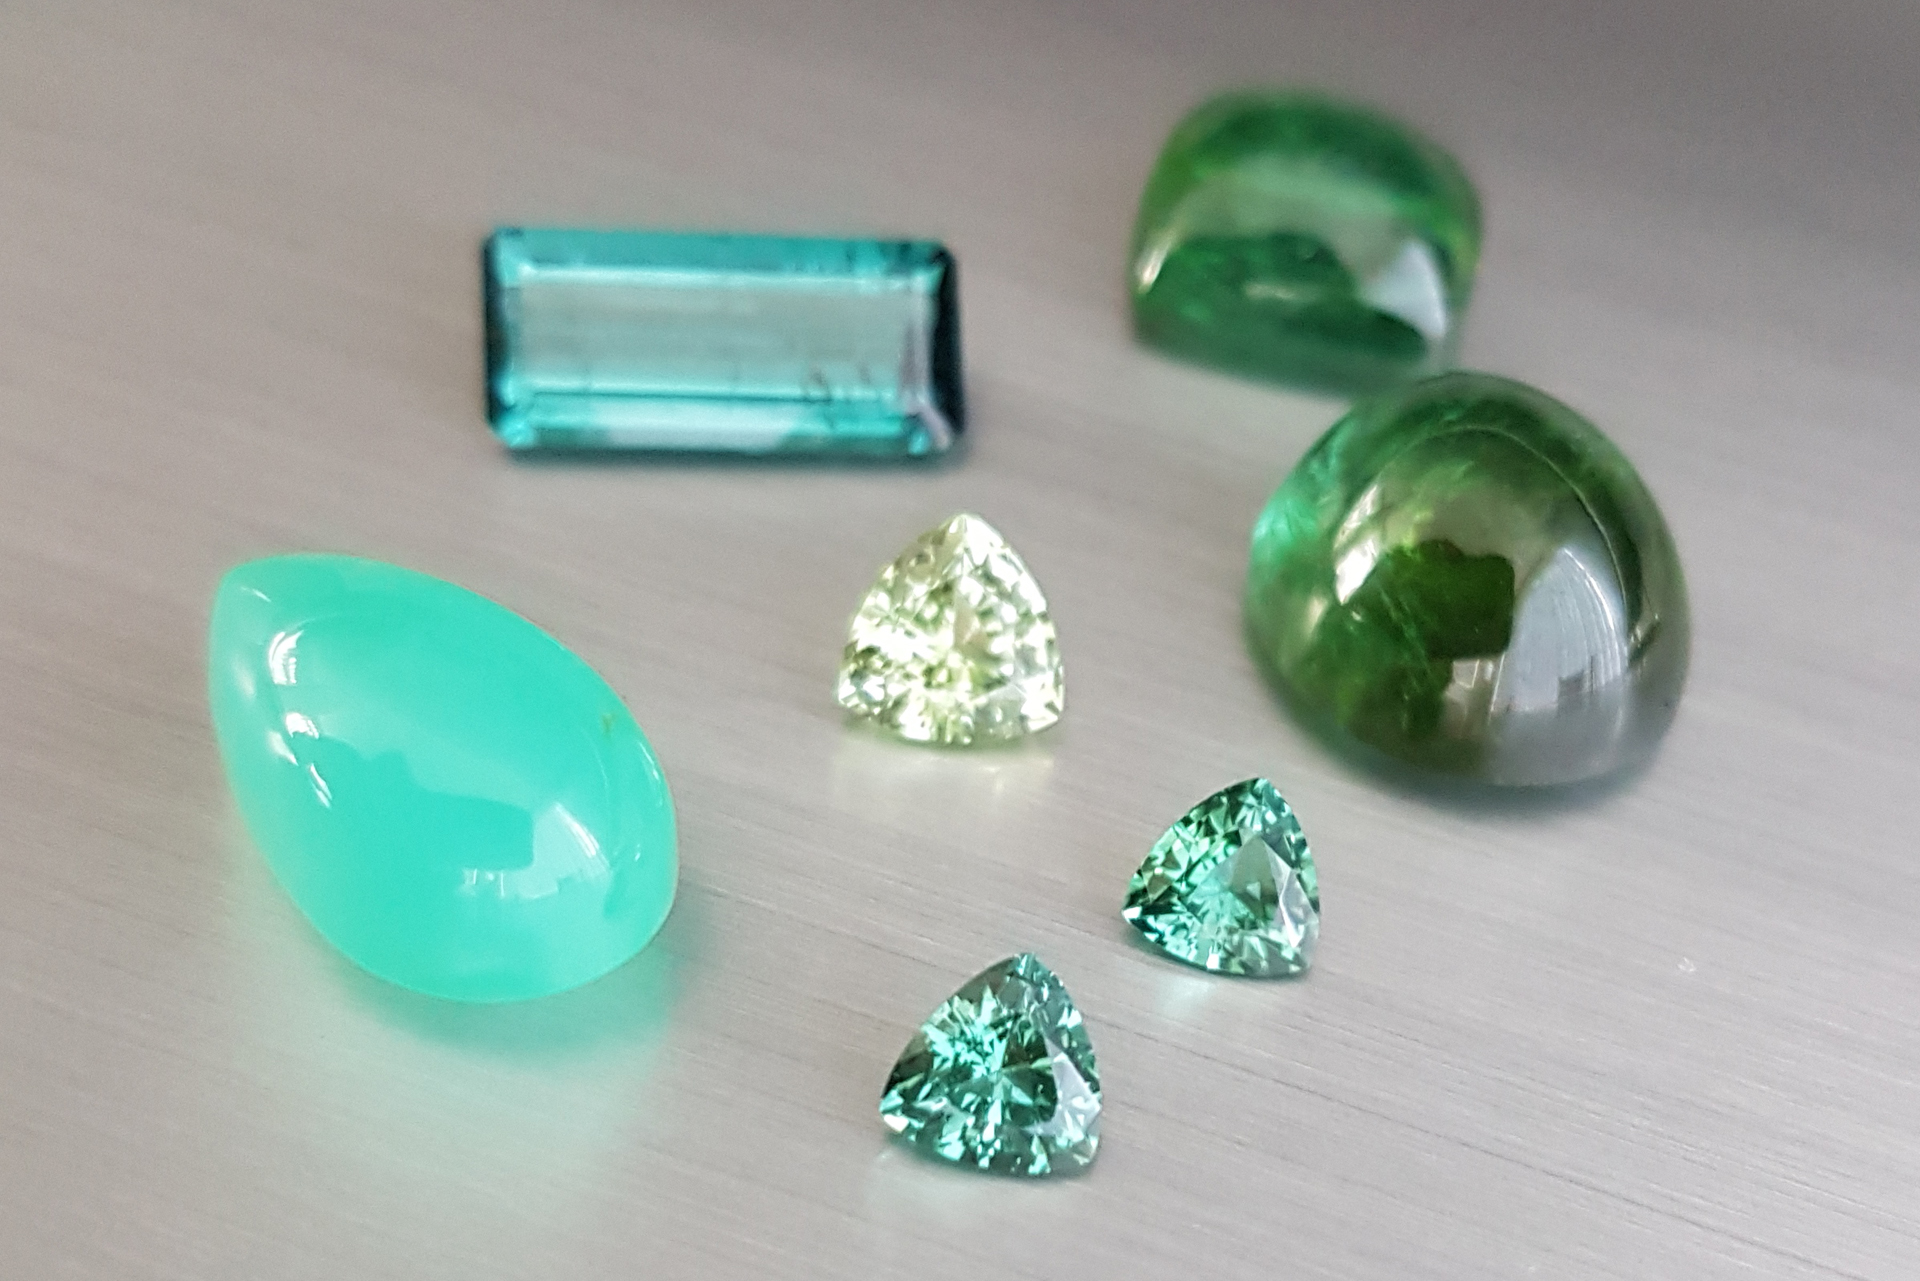 Different shades of green in Zylana gems